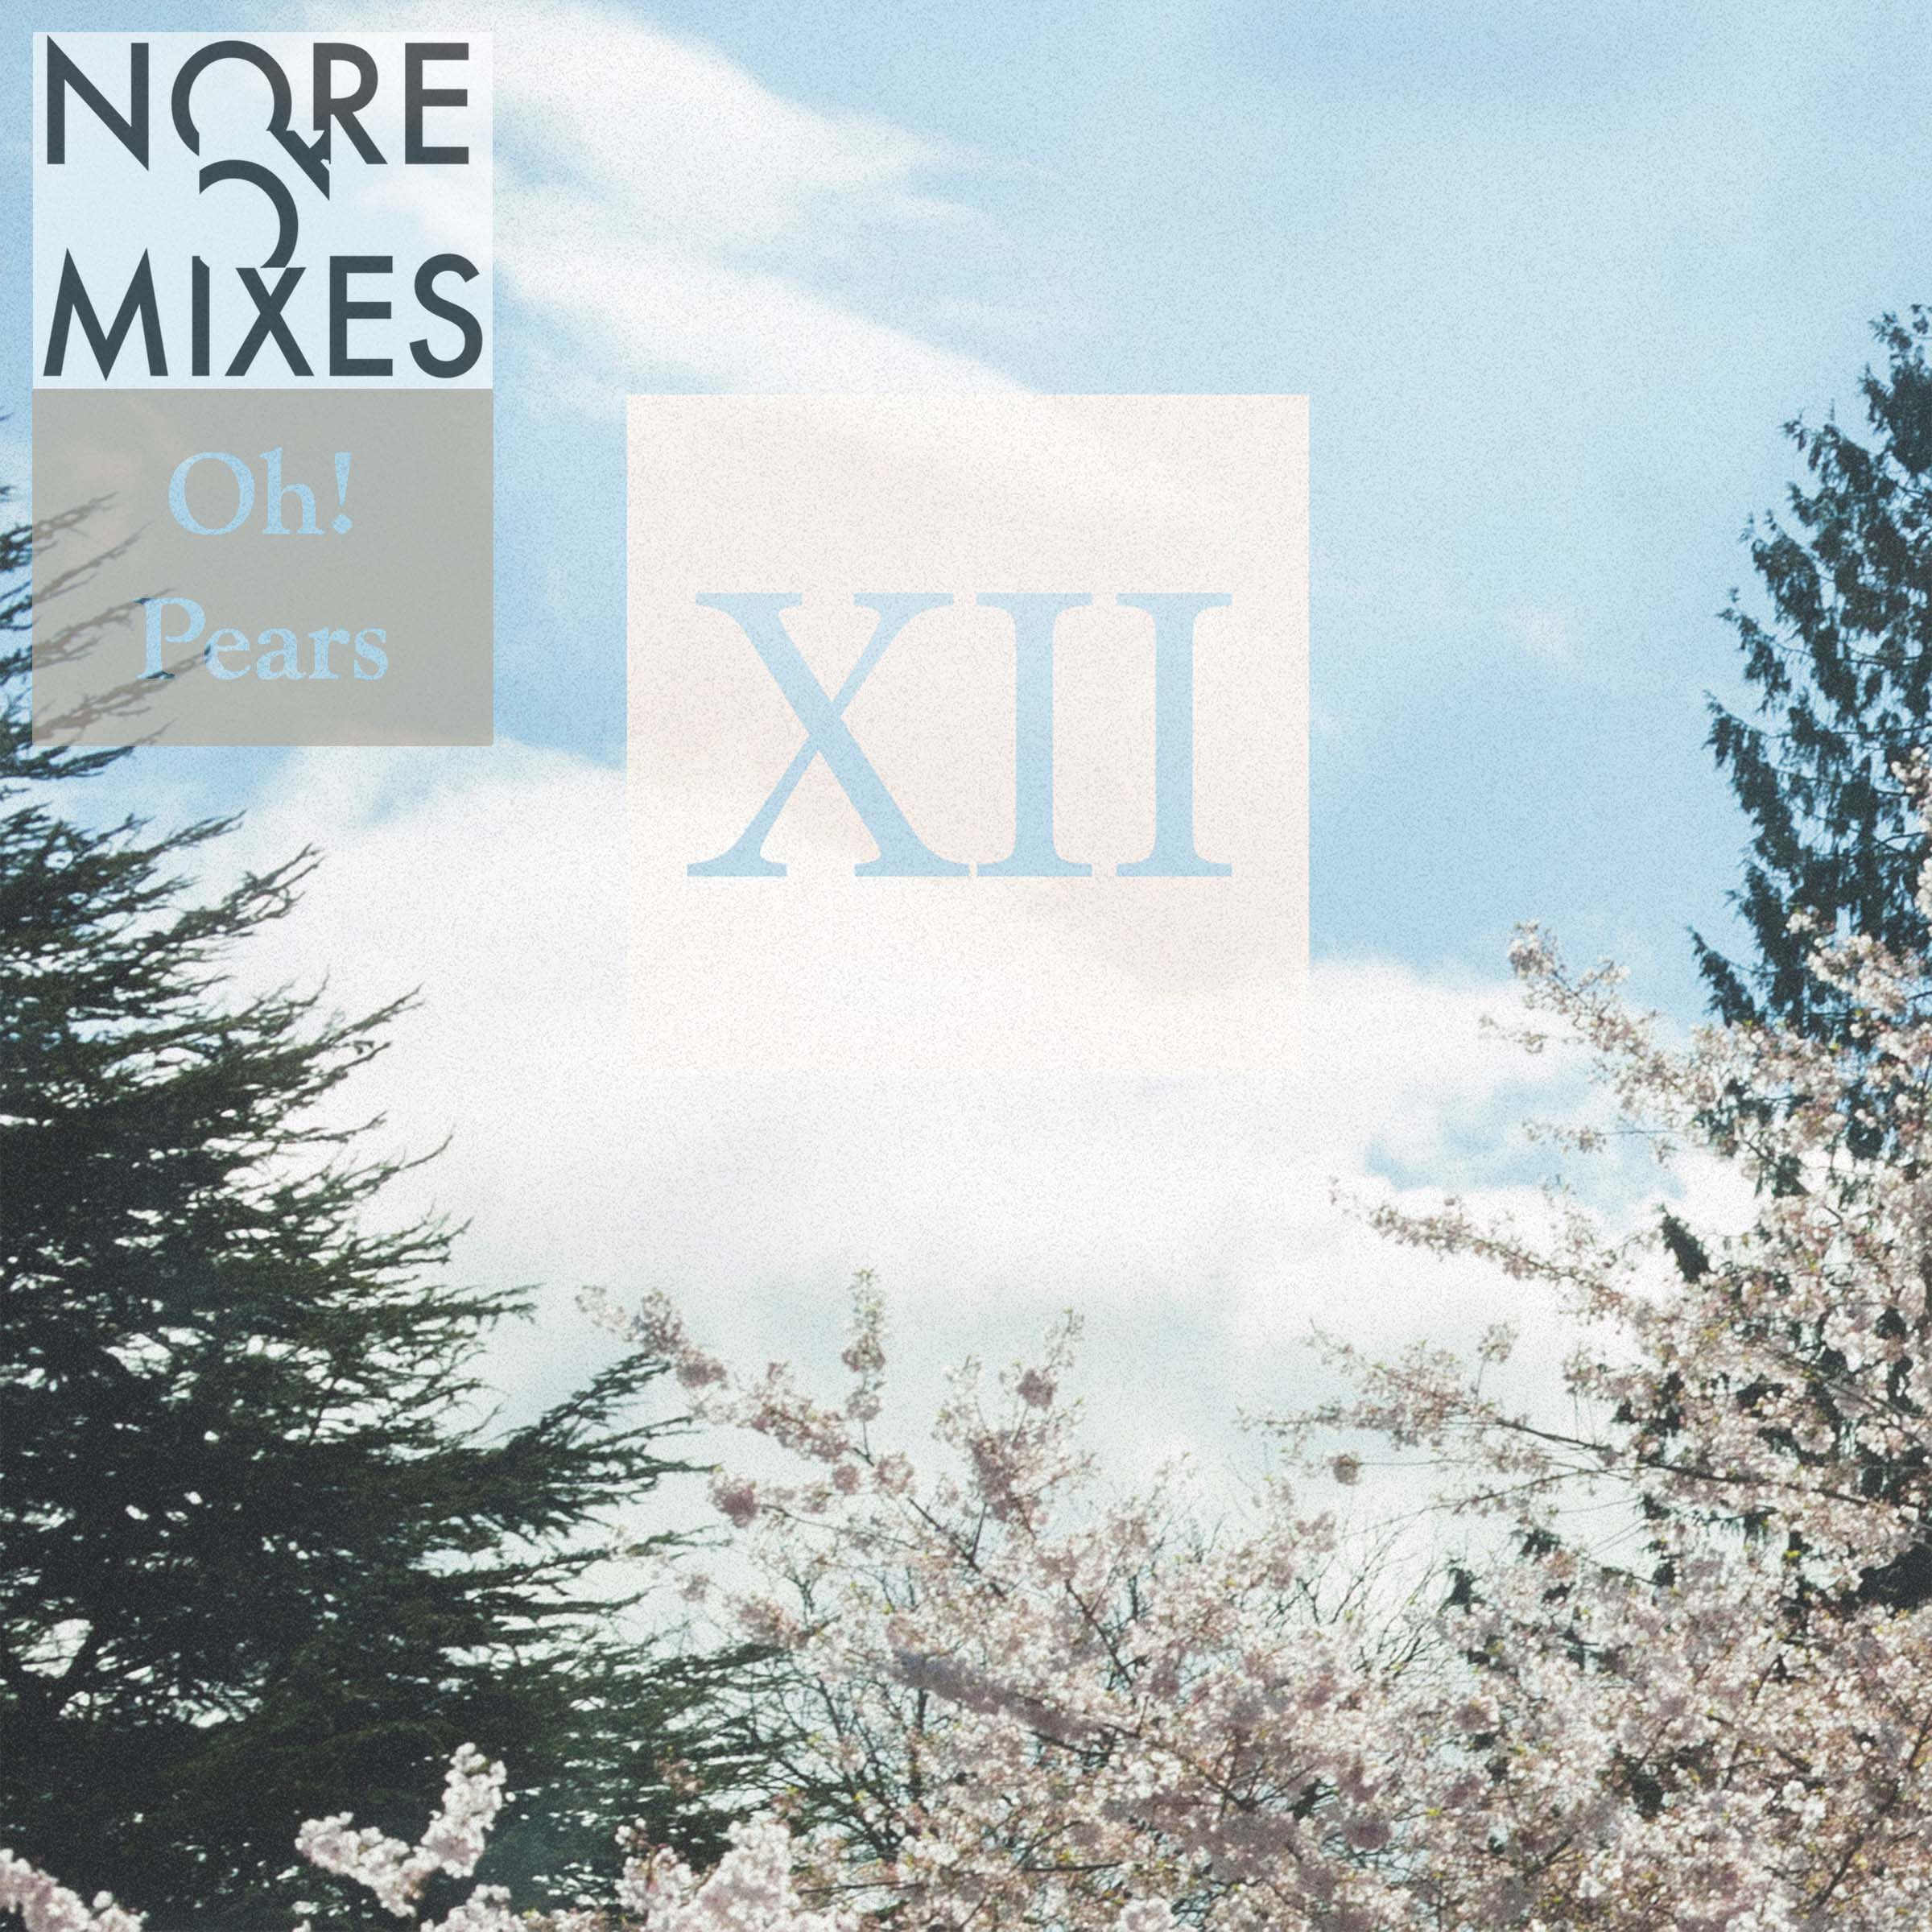 Oh! Pears – XII (nore009)